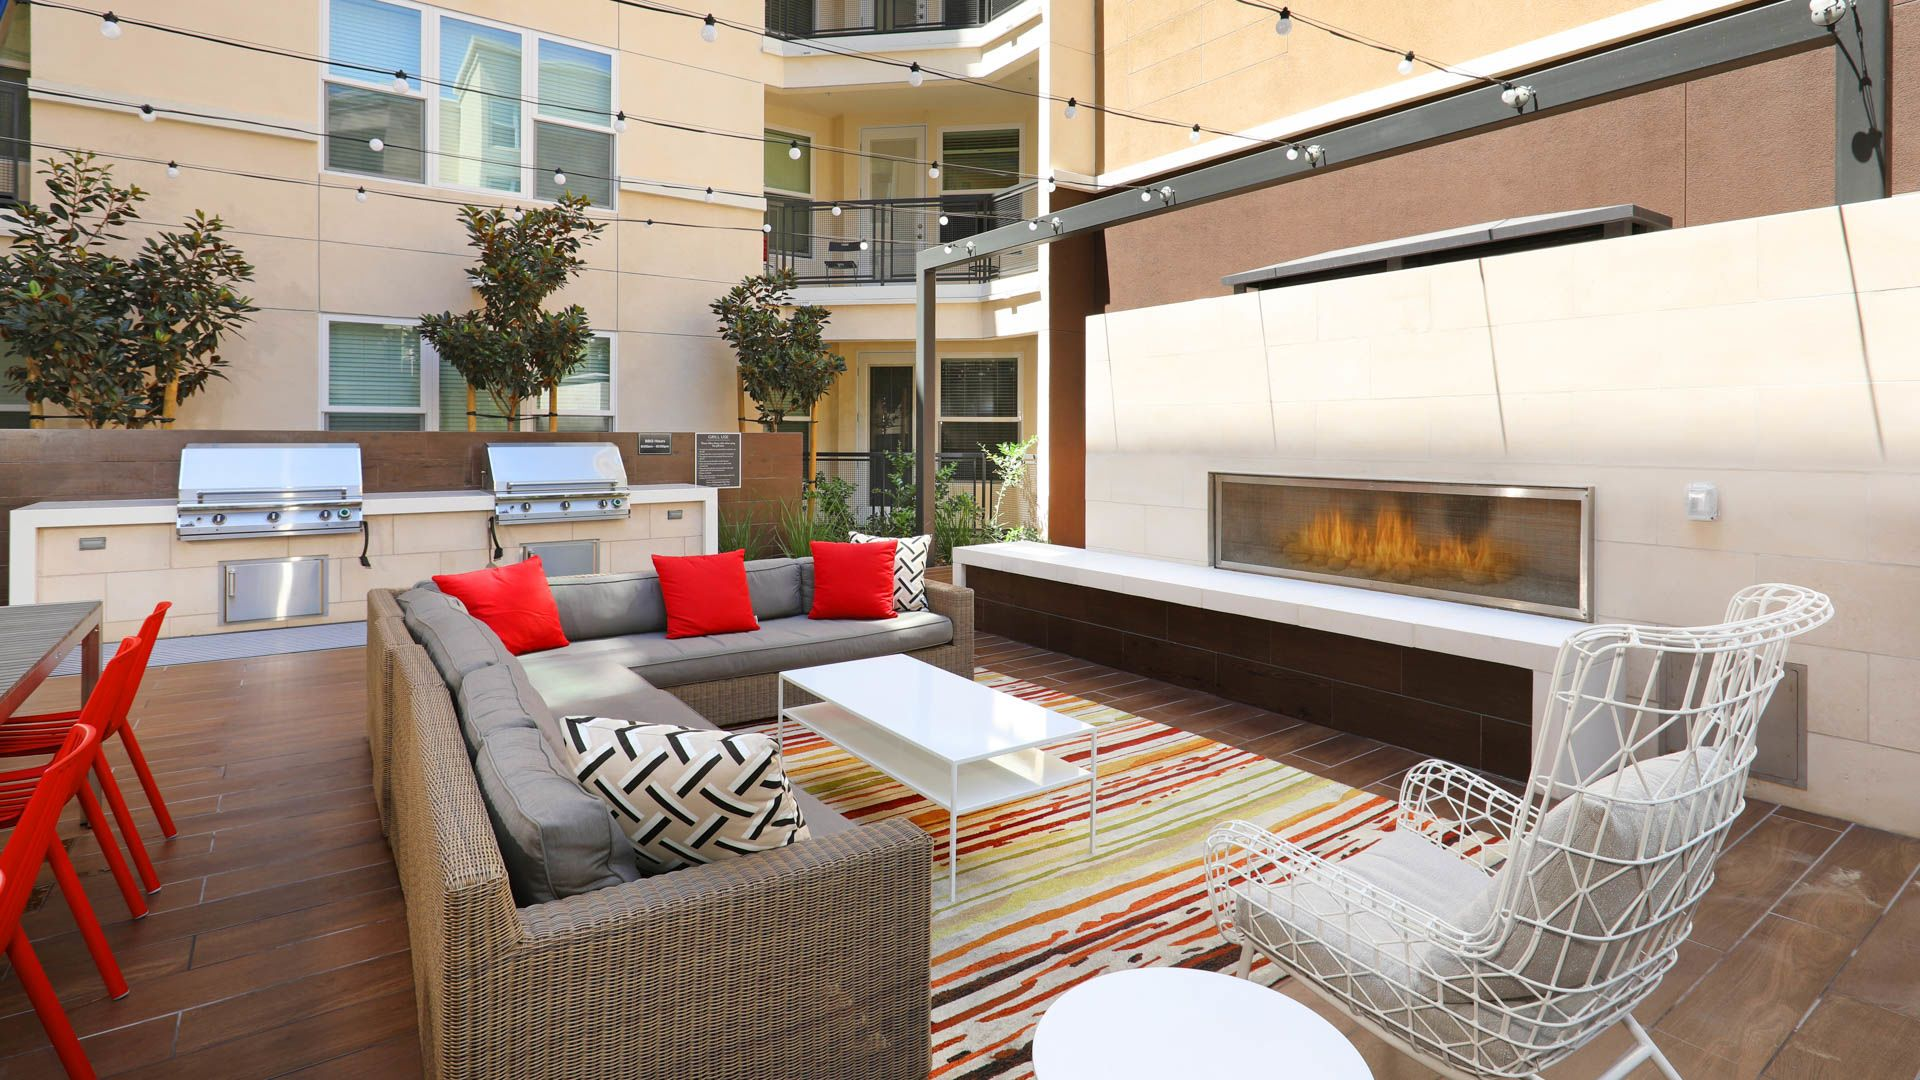 The Alton Apartments - Outdoor Lounge Grilling Area